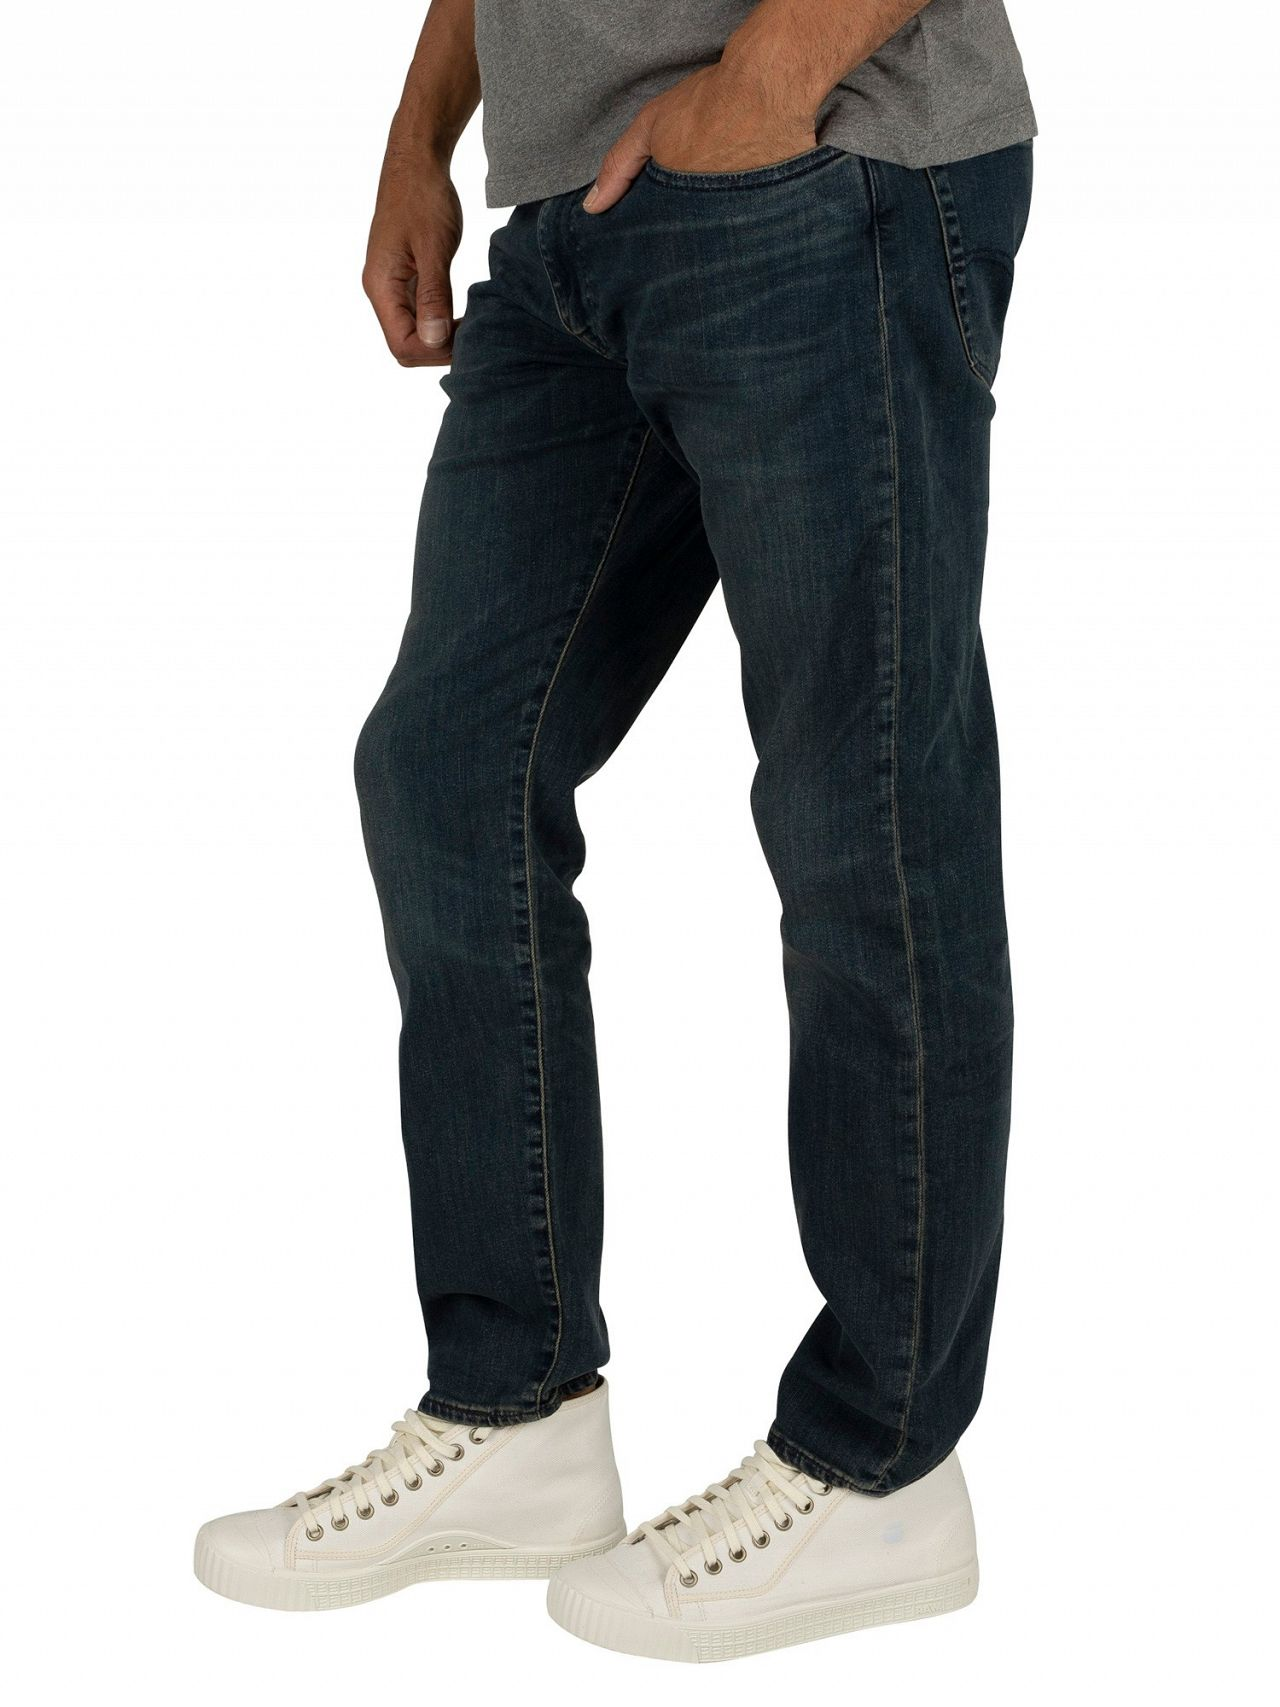 bf14ed83 Levi's Headed South 502 Regular Taper Jeans | Standout